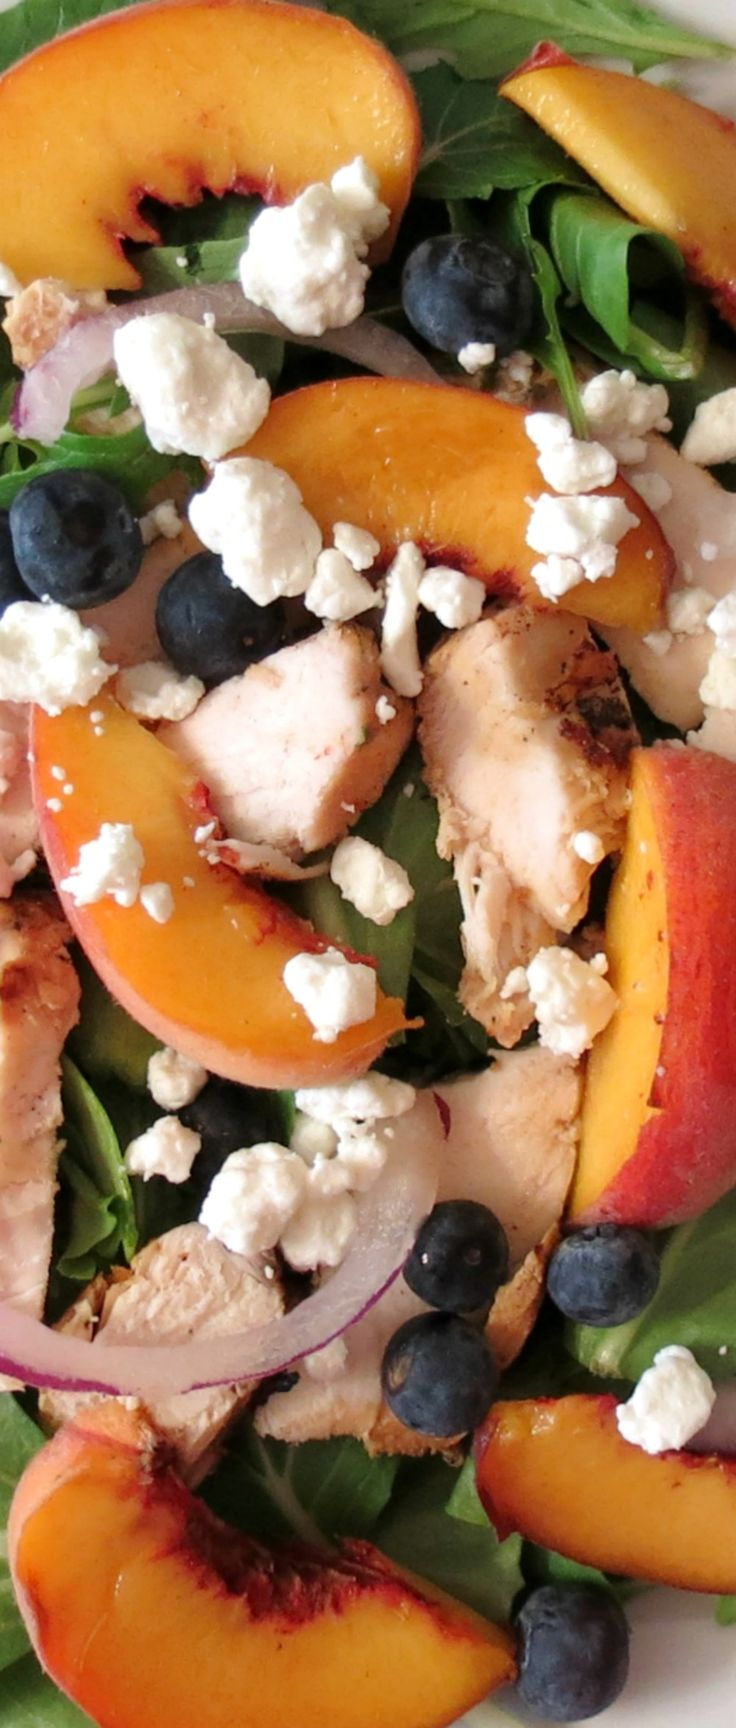 Blueberry Peach Chicken Salad - 25-Plus Perfect Peach Recipes